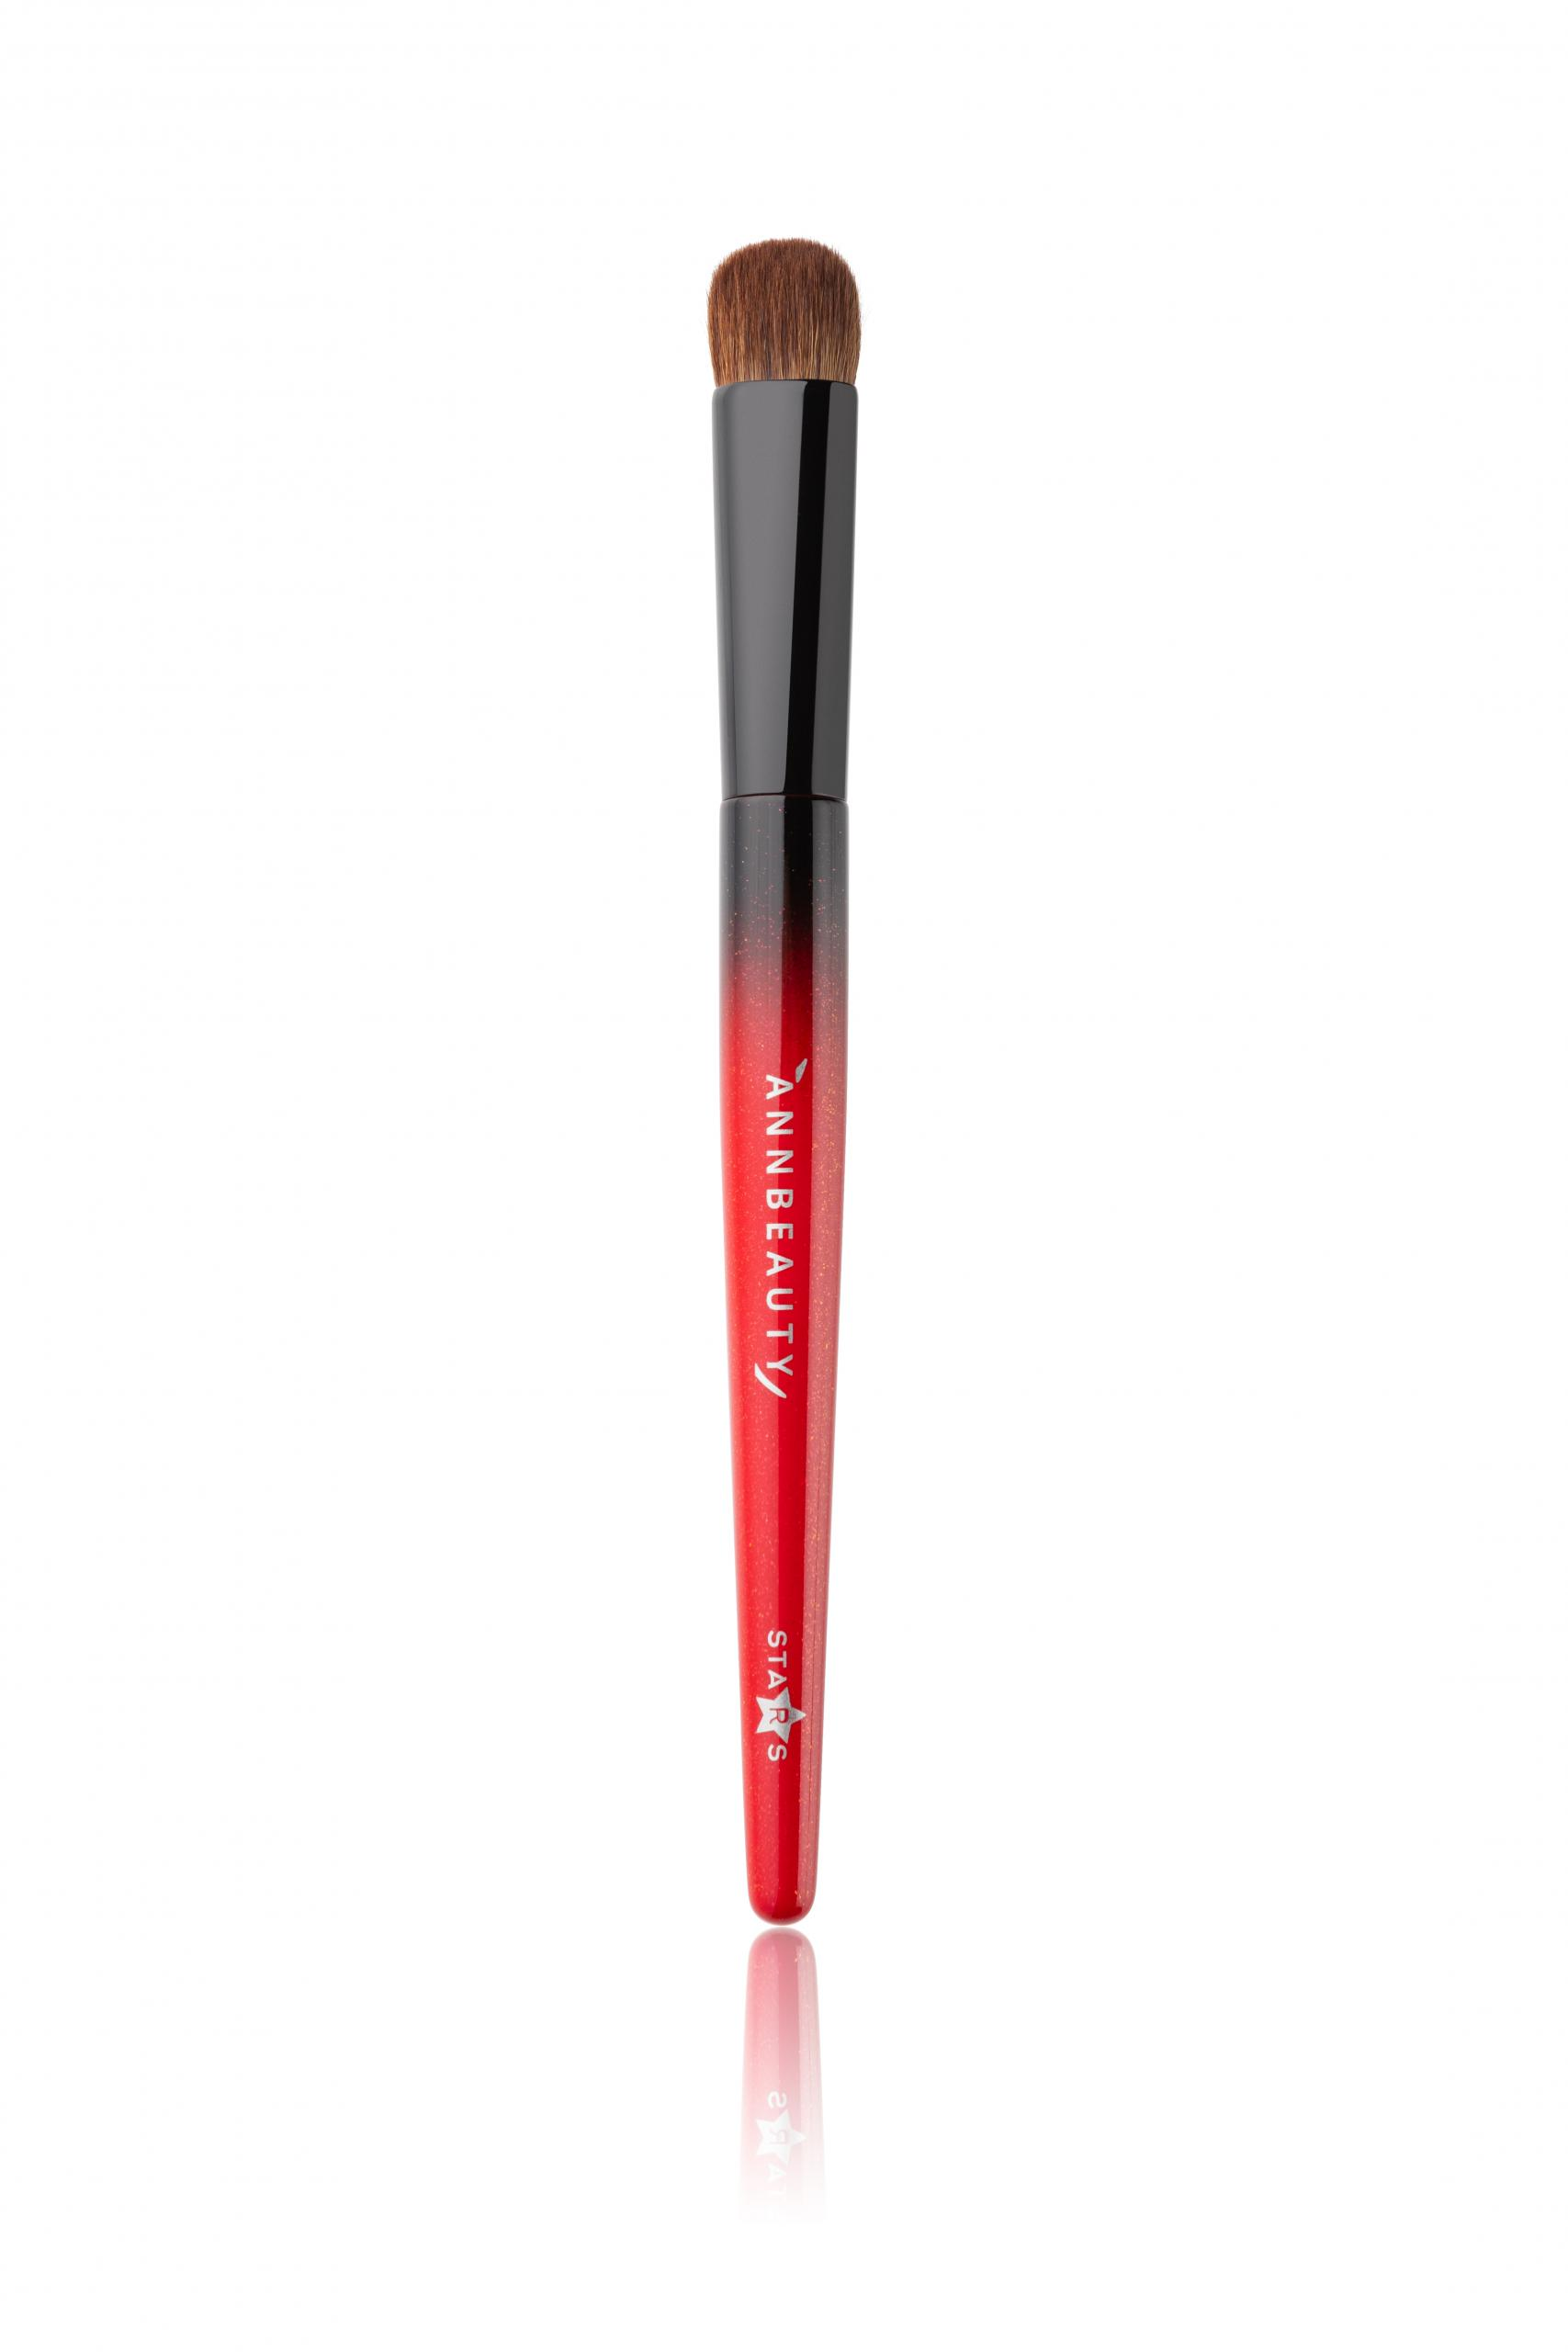 Annbeauty STARS5 Eyeshadow Brush